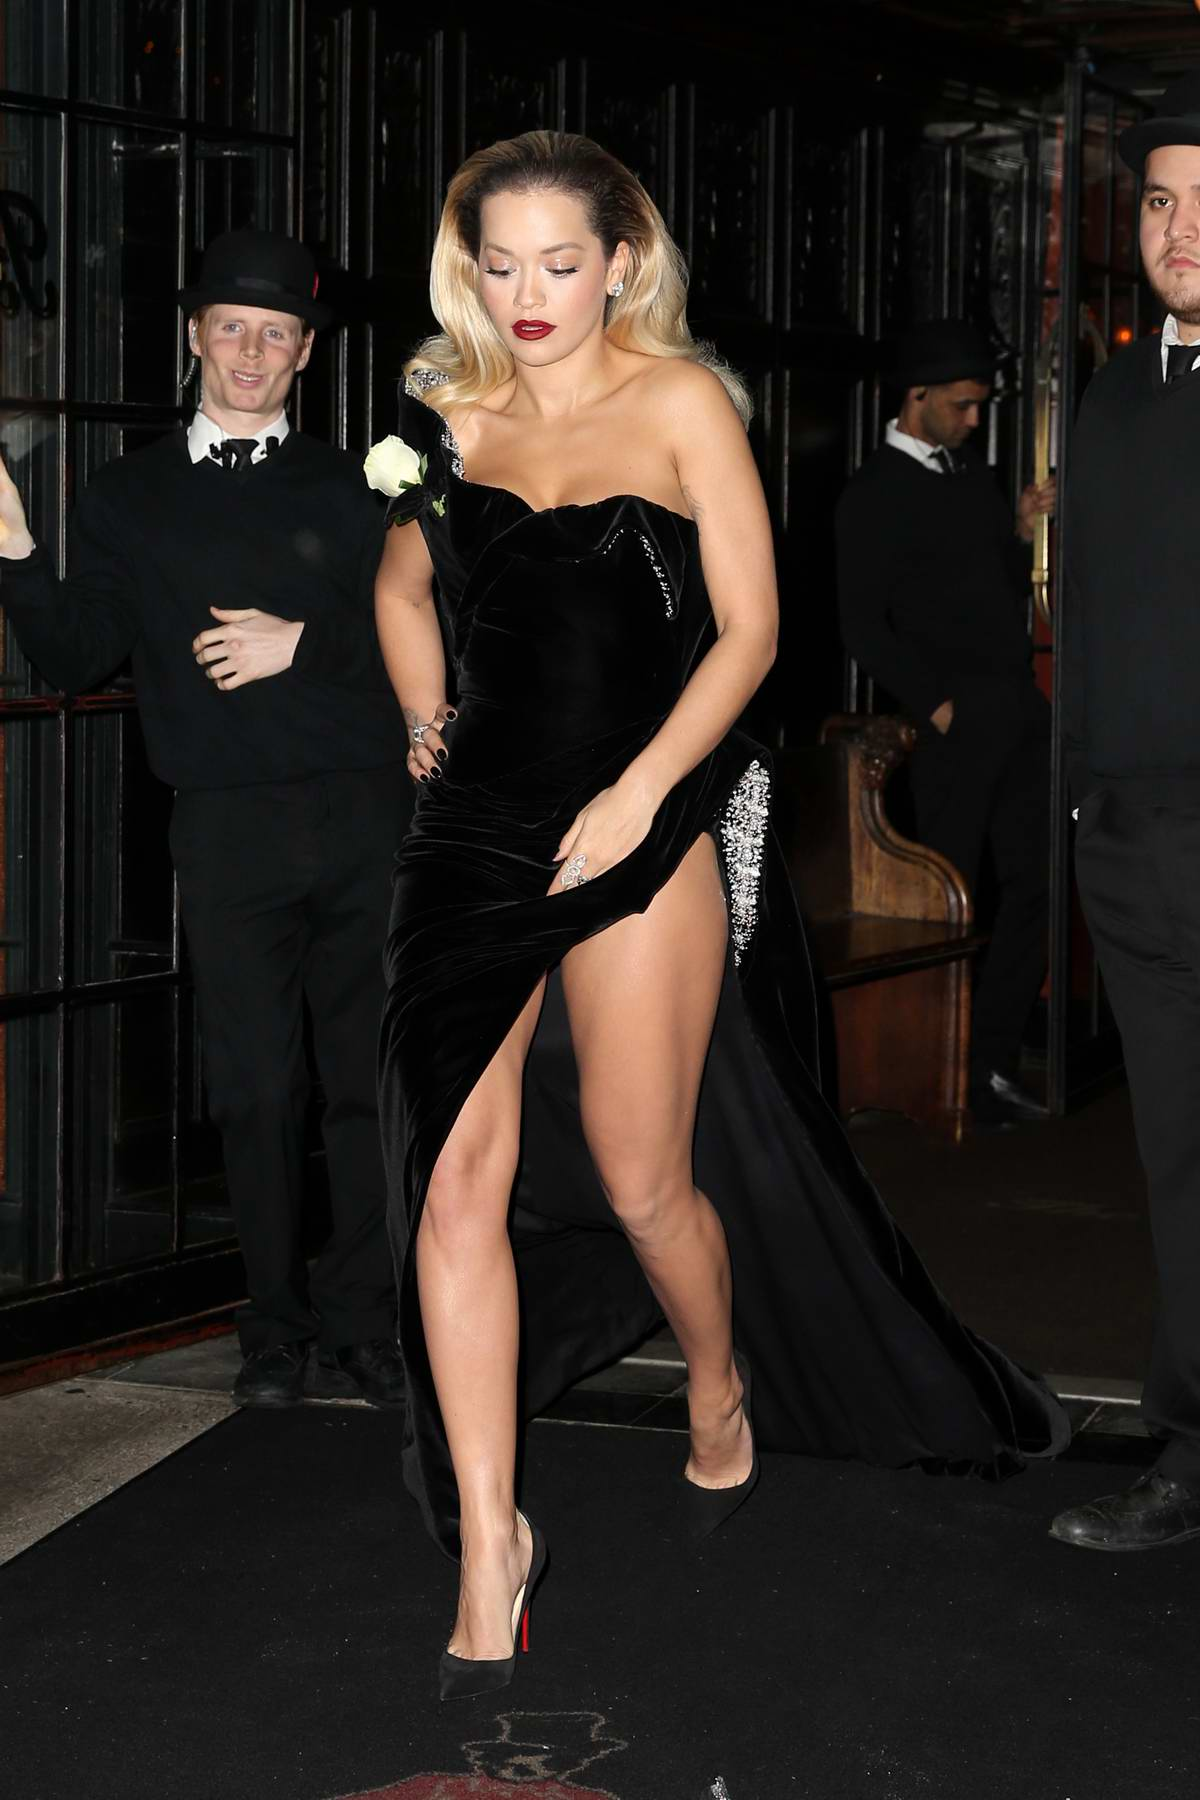 Rita Ora leaves The Bowery Hotel as she heads to the Madison Square Garden for the 60th Grammy Awards in New York City